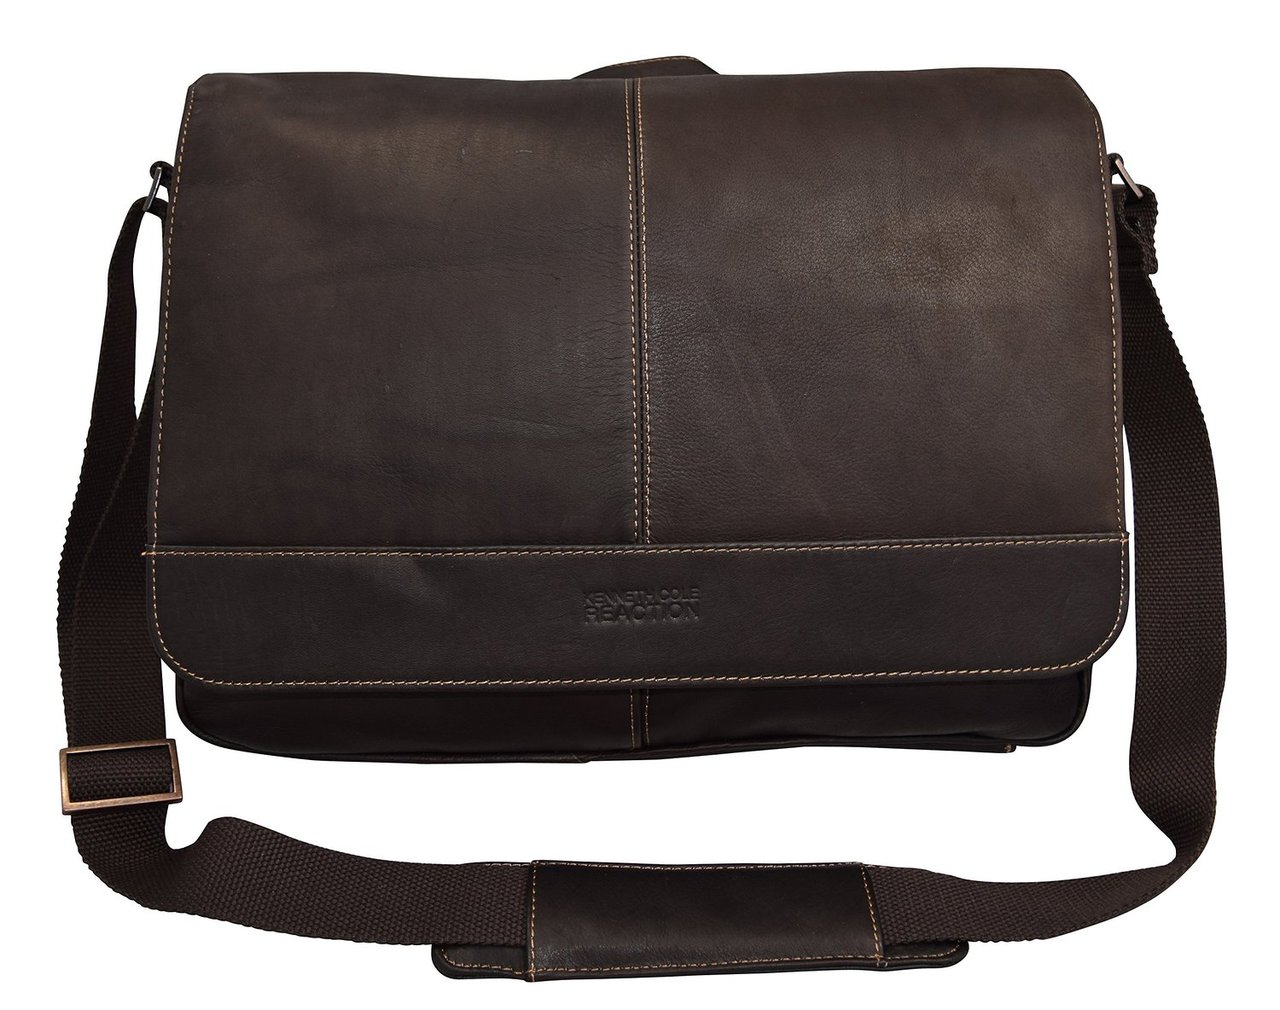 fb728a40b7 Kenneth Cole Reaction Risky Business Colombian Messenger Bag 52454